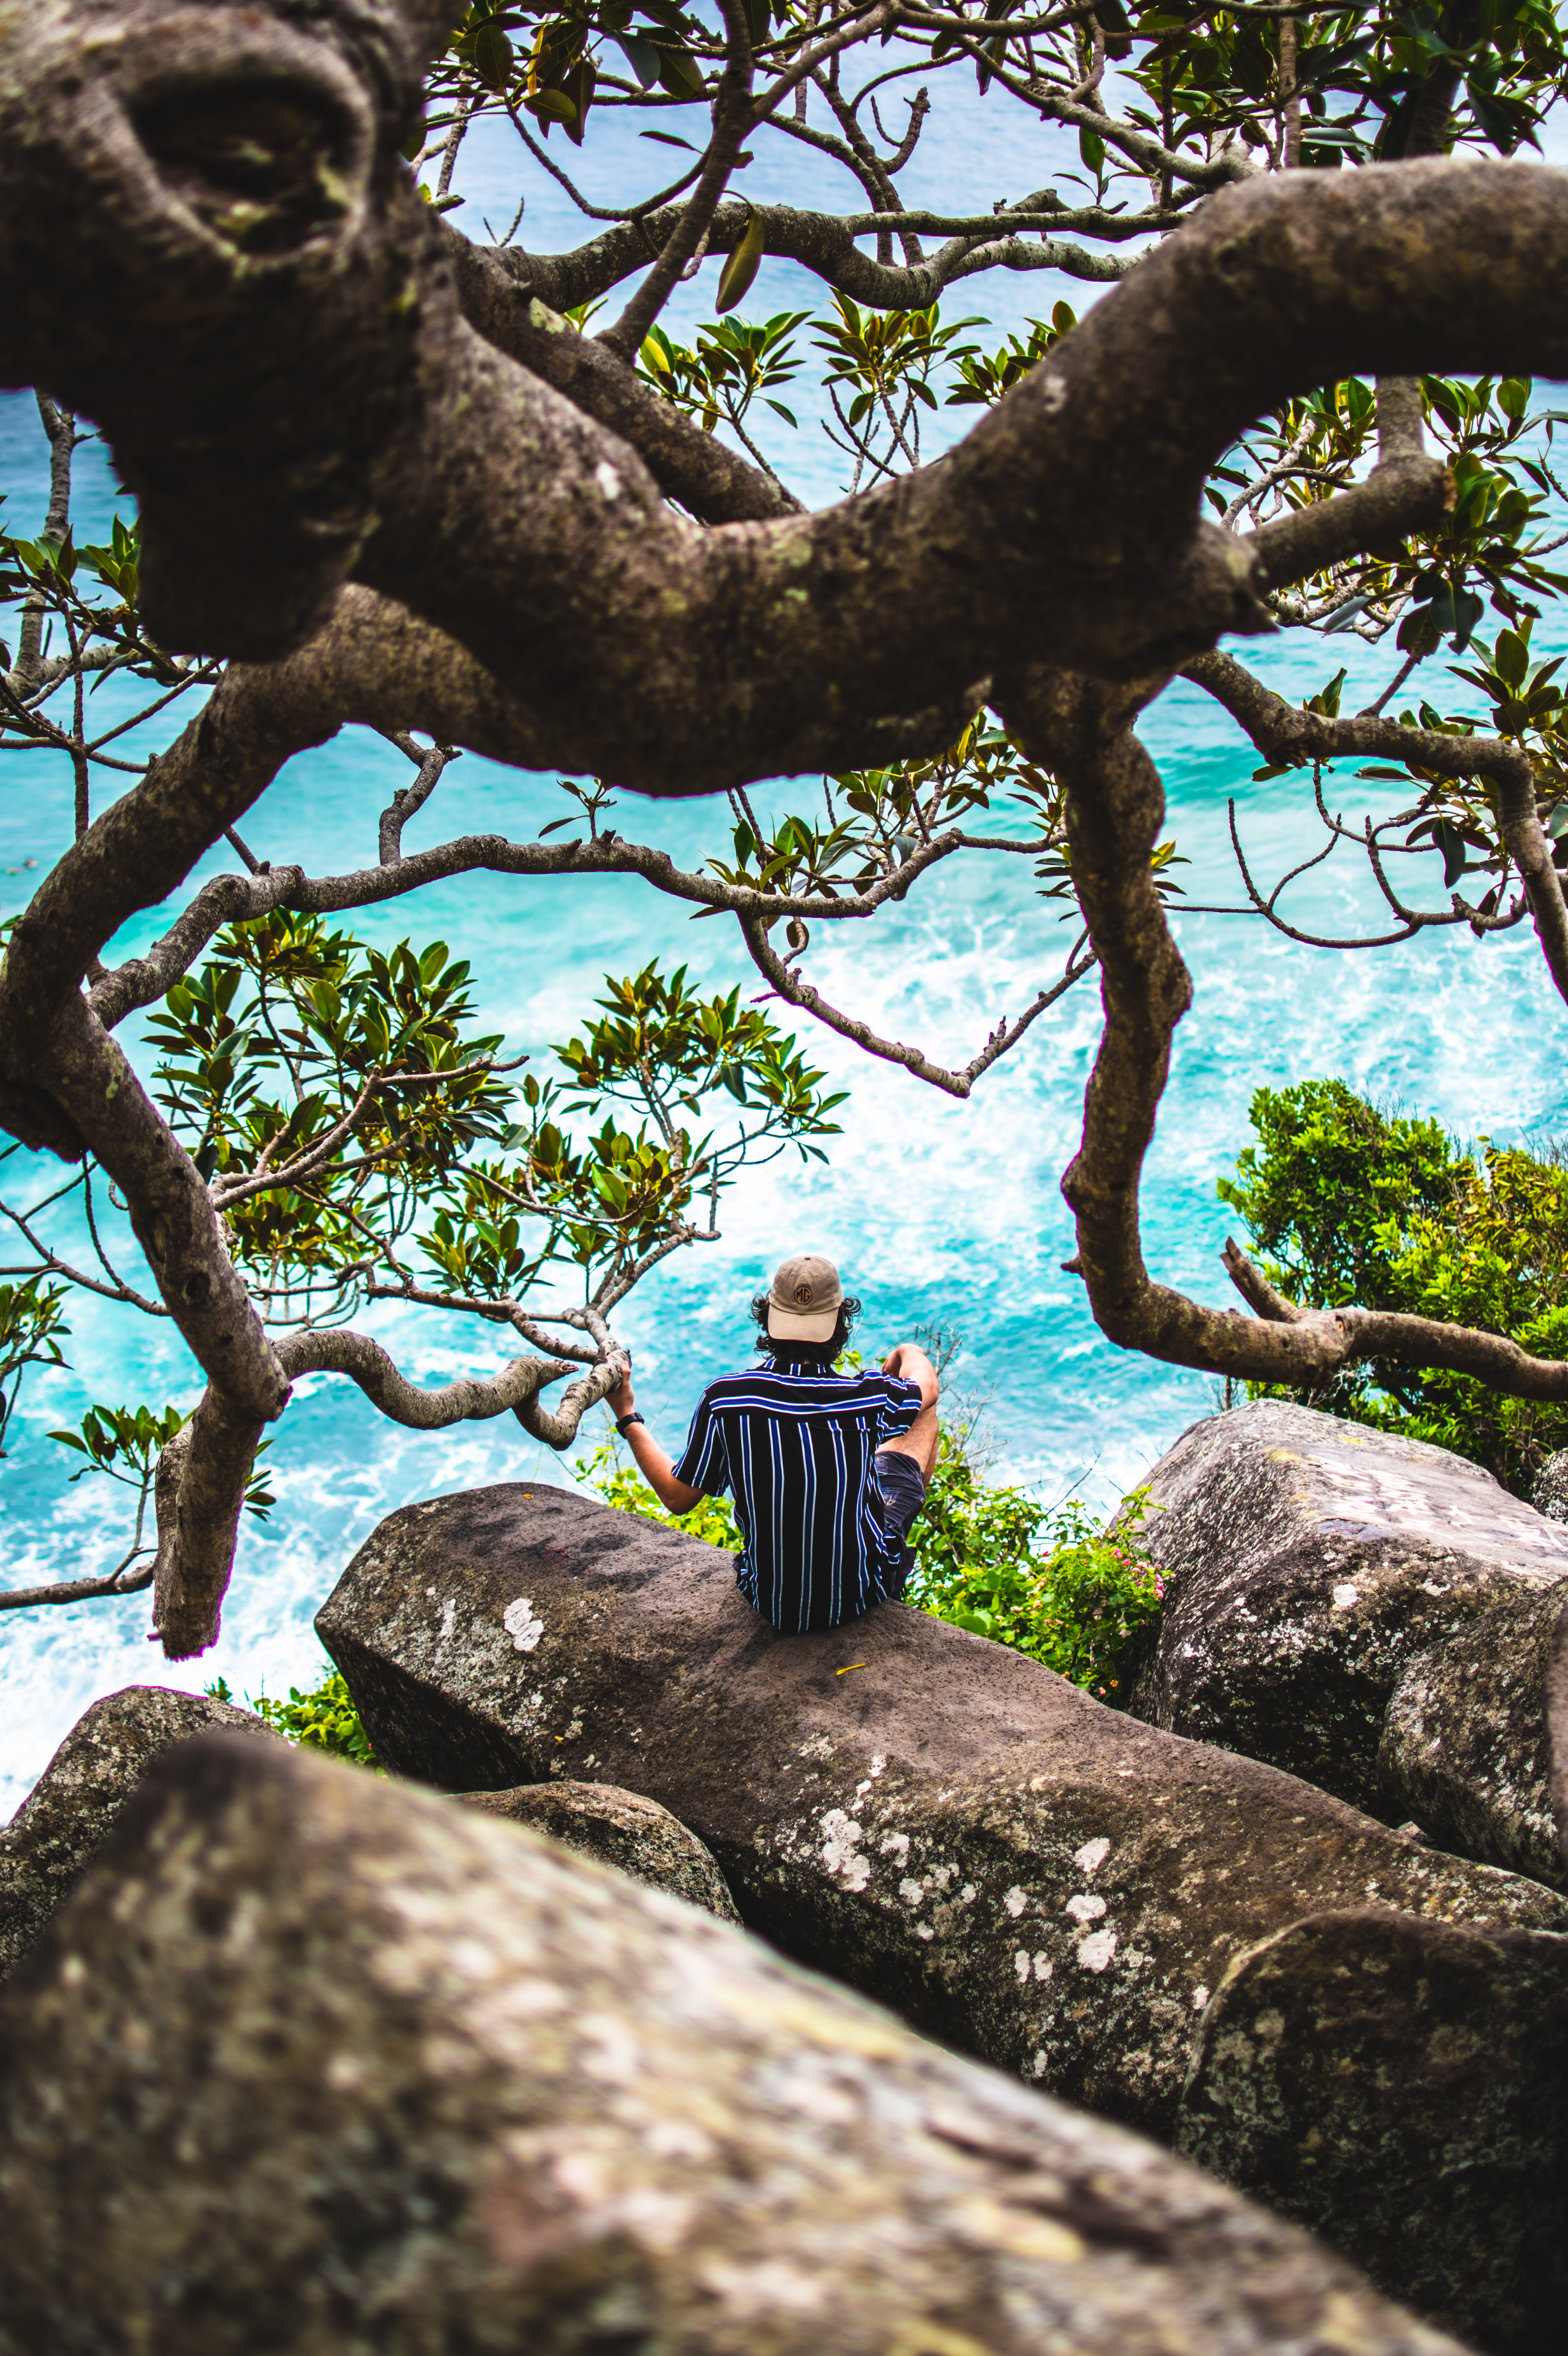 146571 Screensavers and Wallpapers Human for phone. Download Human, Nature, Stones, Sea, Privacy, Seclusion, Person, Loneliness pictures for free